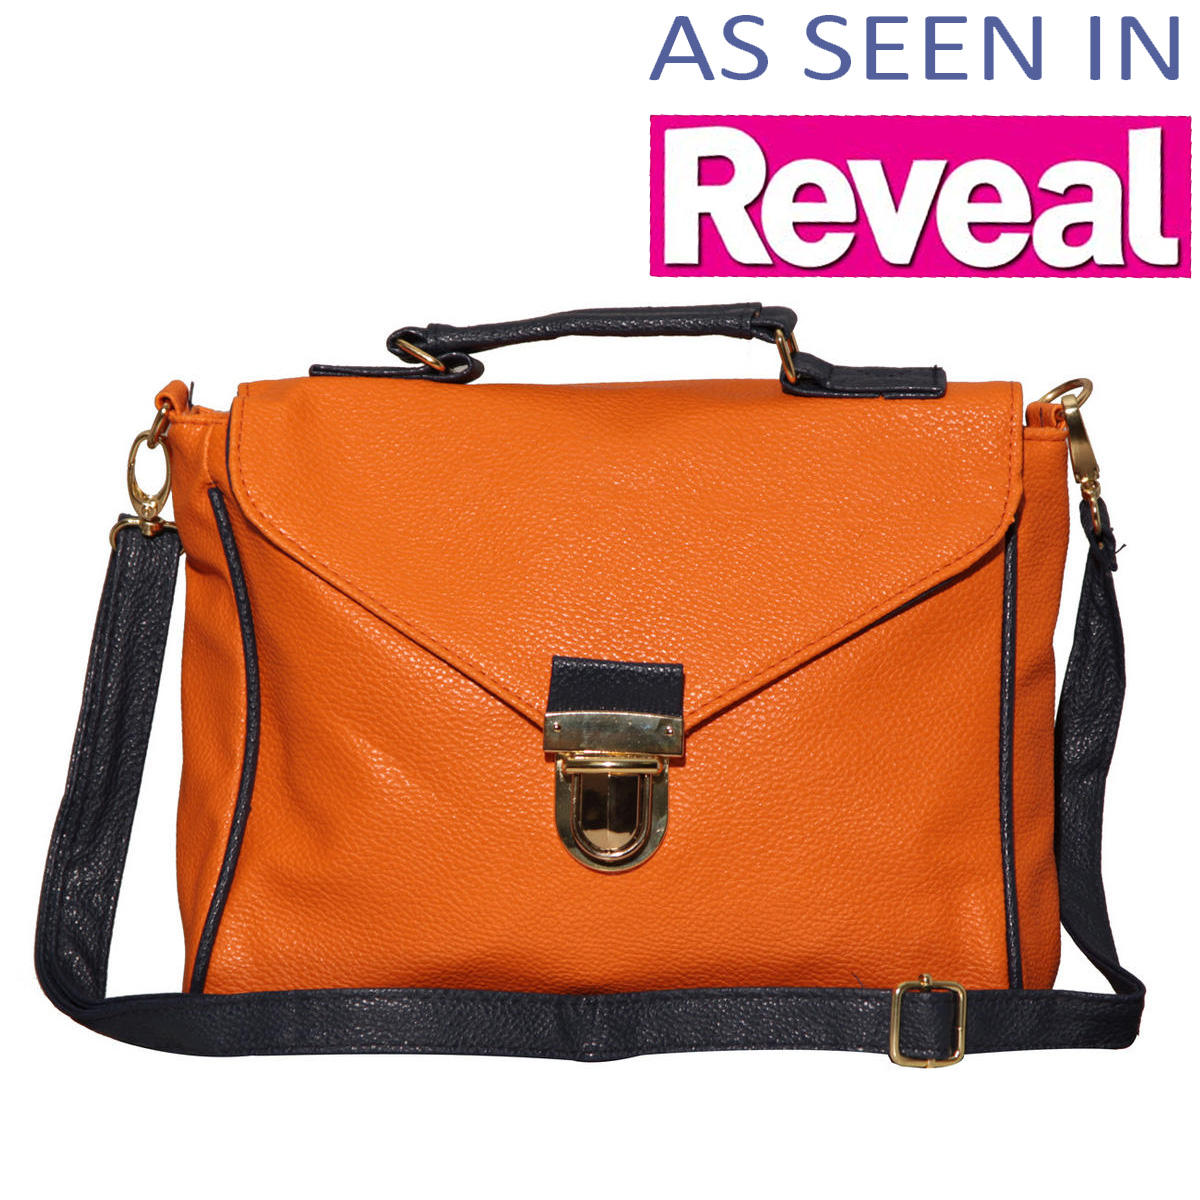 Orange Contrast Satchel Bag Preview